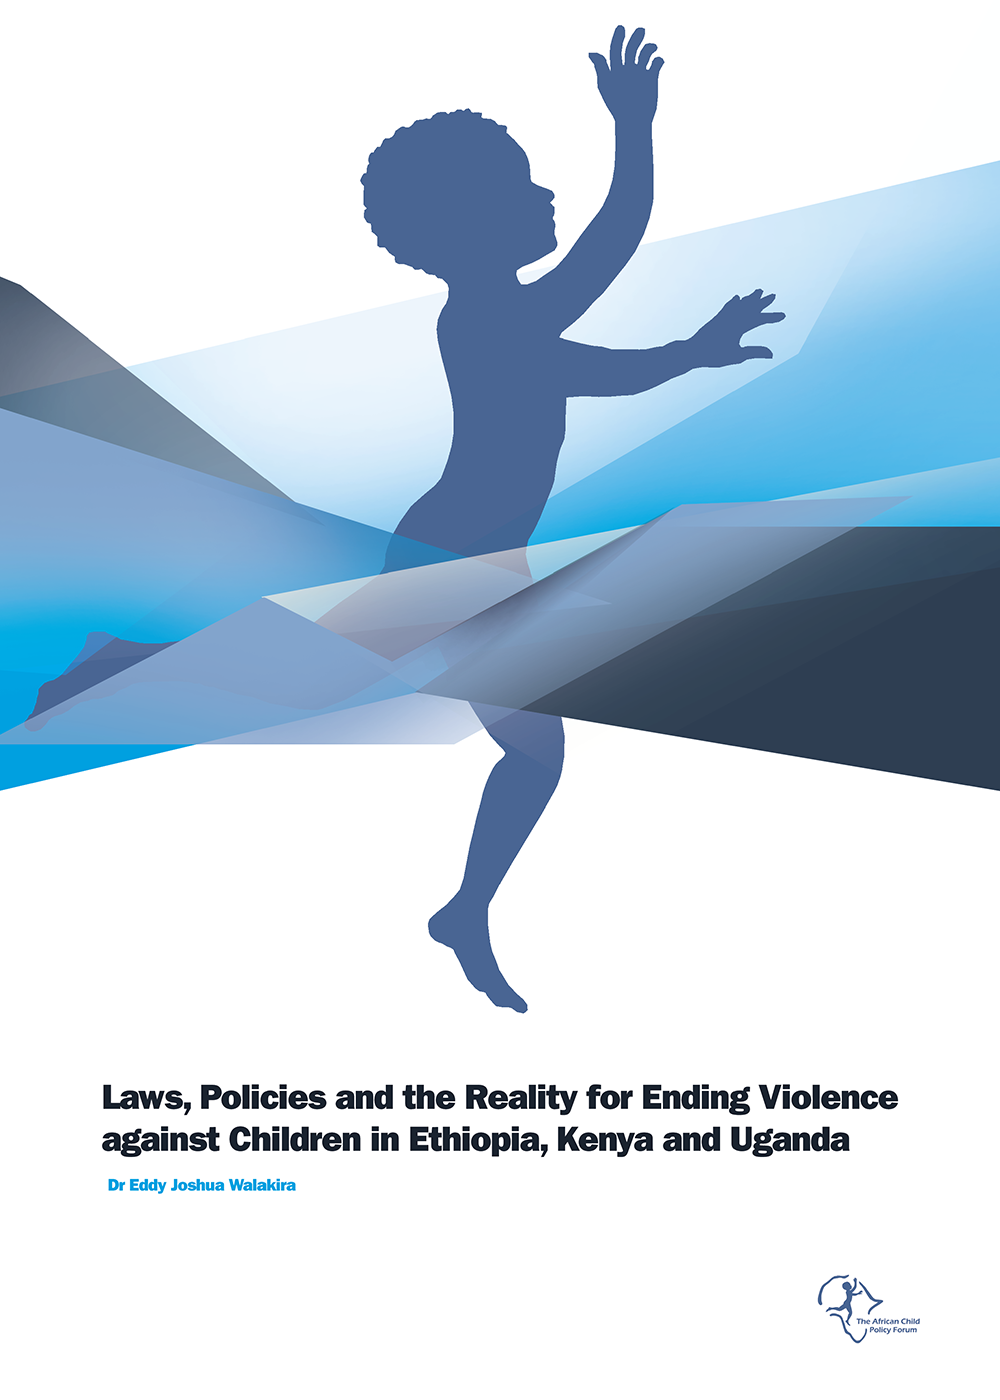 Laws, Policies and the Reality for Ending Violence against Children in Ethiopia, Kenya and Uganda